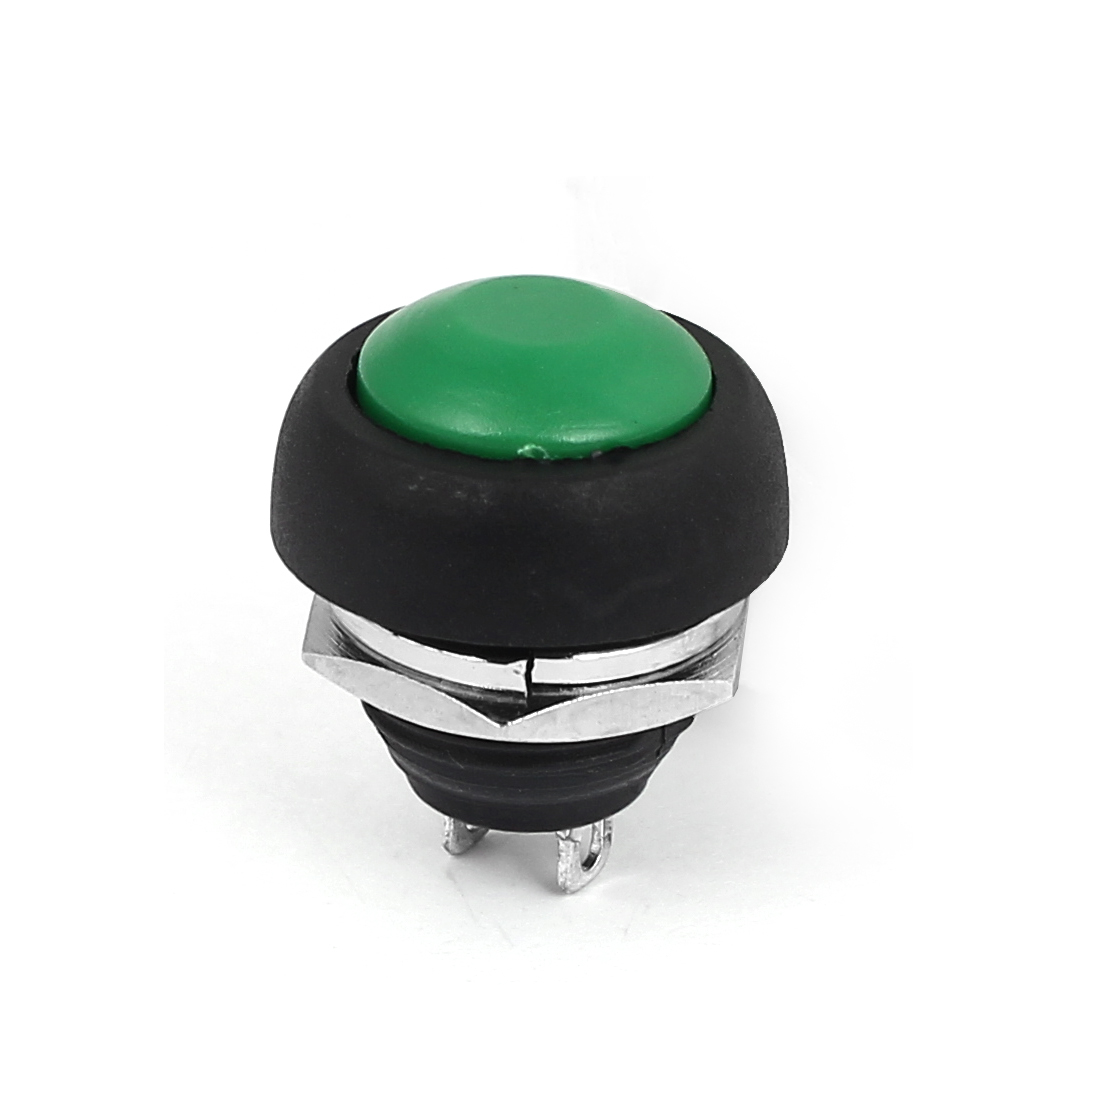 12mm Mini Waterproof Pushbutton Switch Momentary Type Green Plastic Head